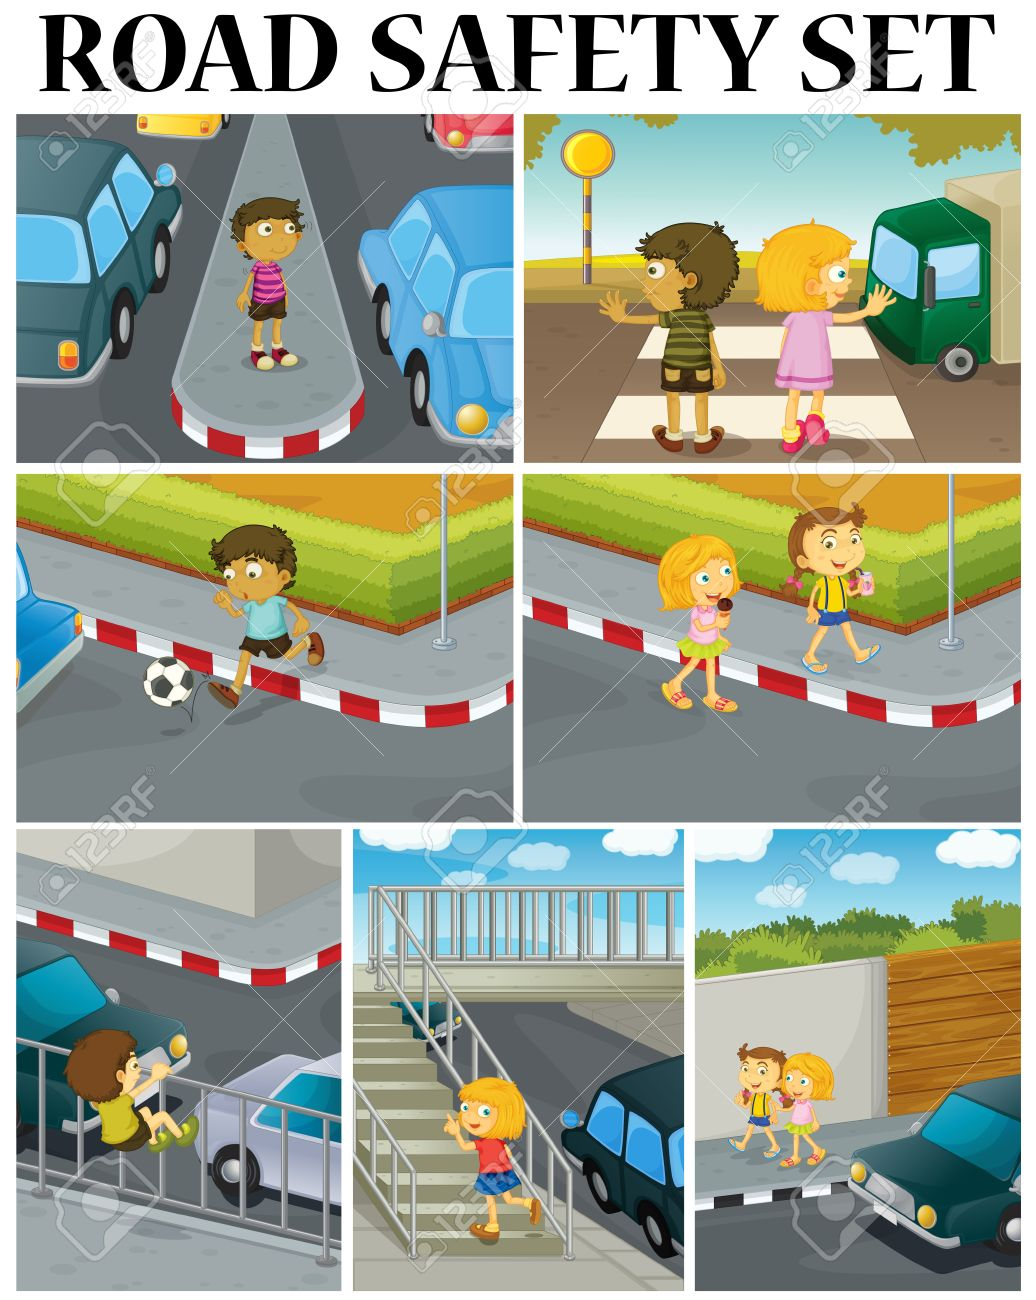 Scenes of children and road safety illustration.